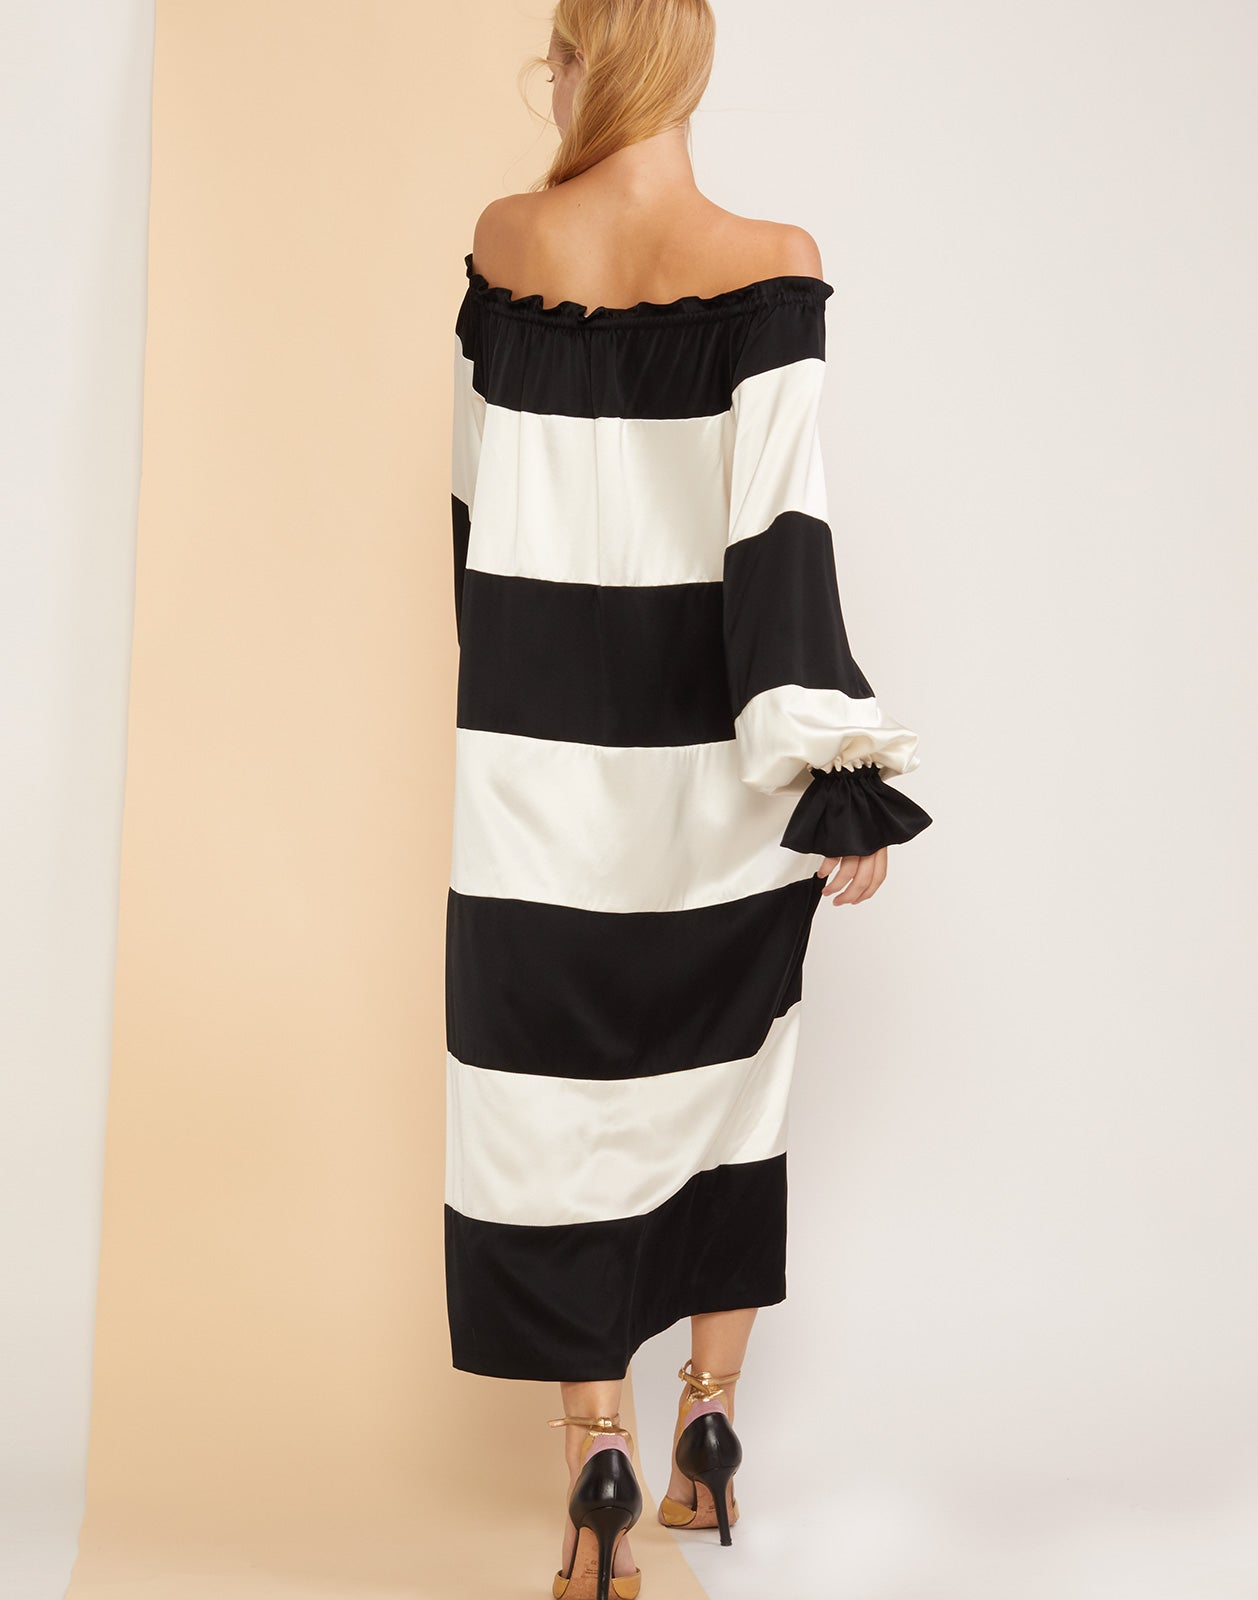 Back view of the Shanley off shoulder black and white striped dress.